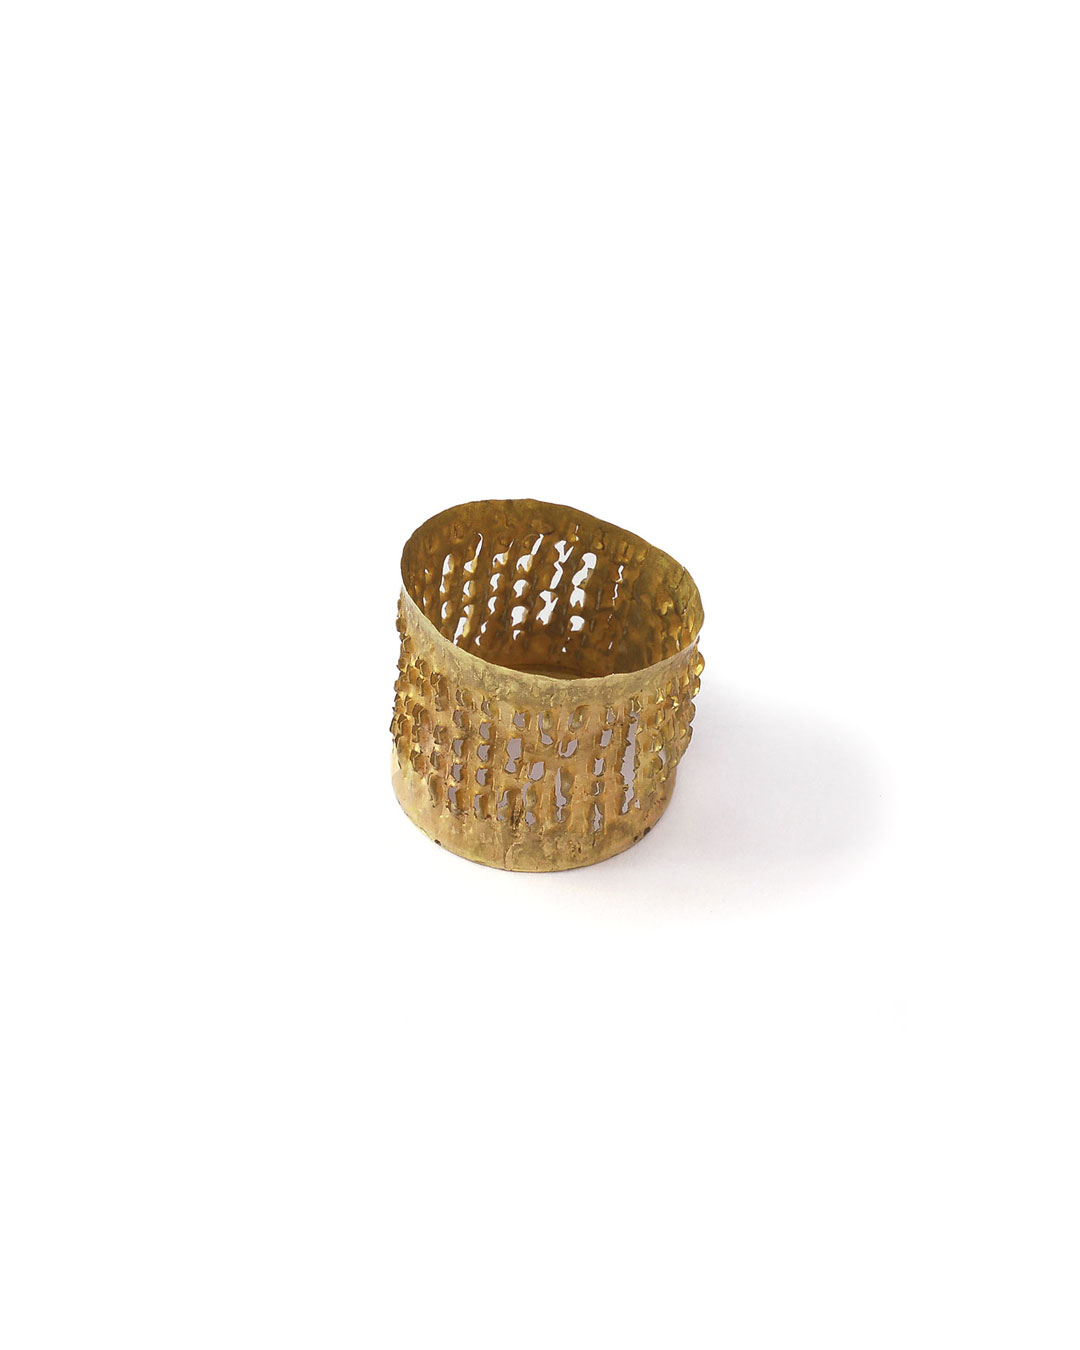 Stefano Marchetti, untitled, 2007, ring; gold, silver, 27 x 25 x 24 mm, €2500